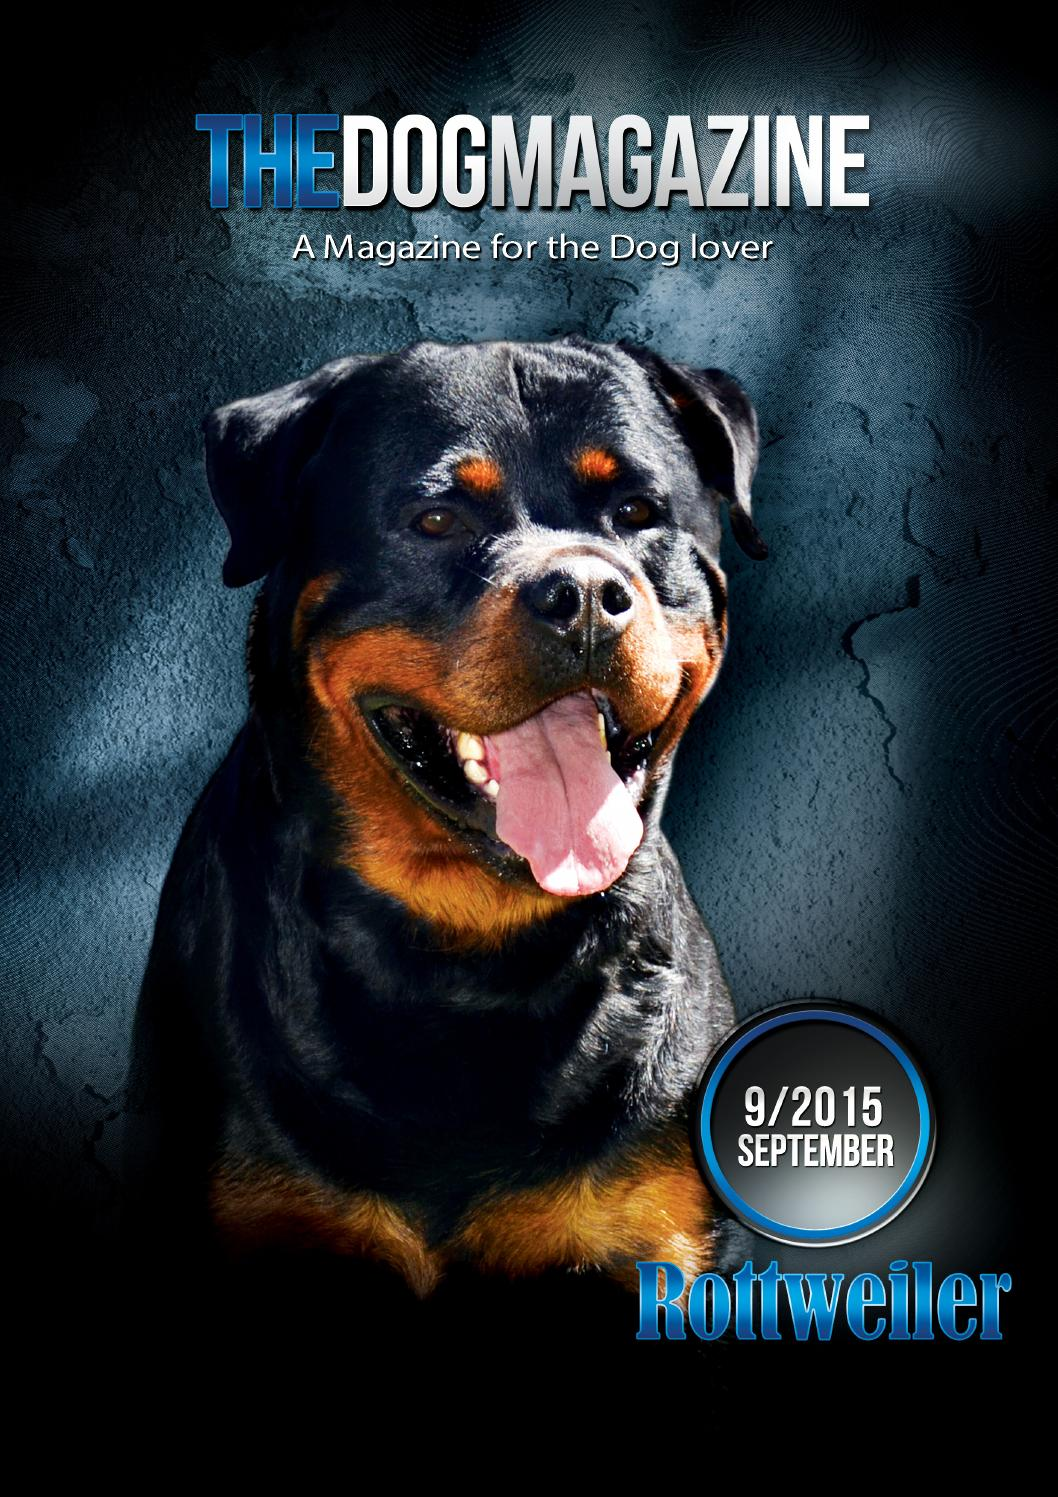 The Dog Magazine Issue 09 2015 Rottweiler By